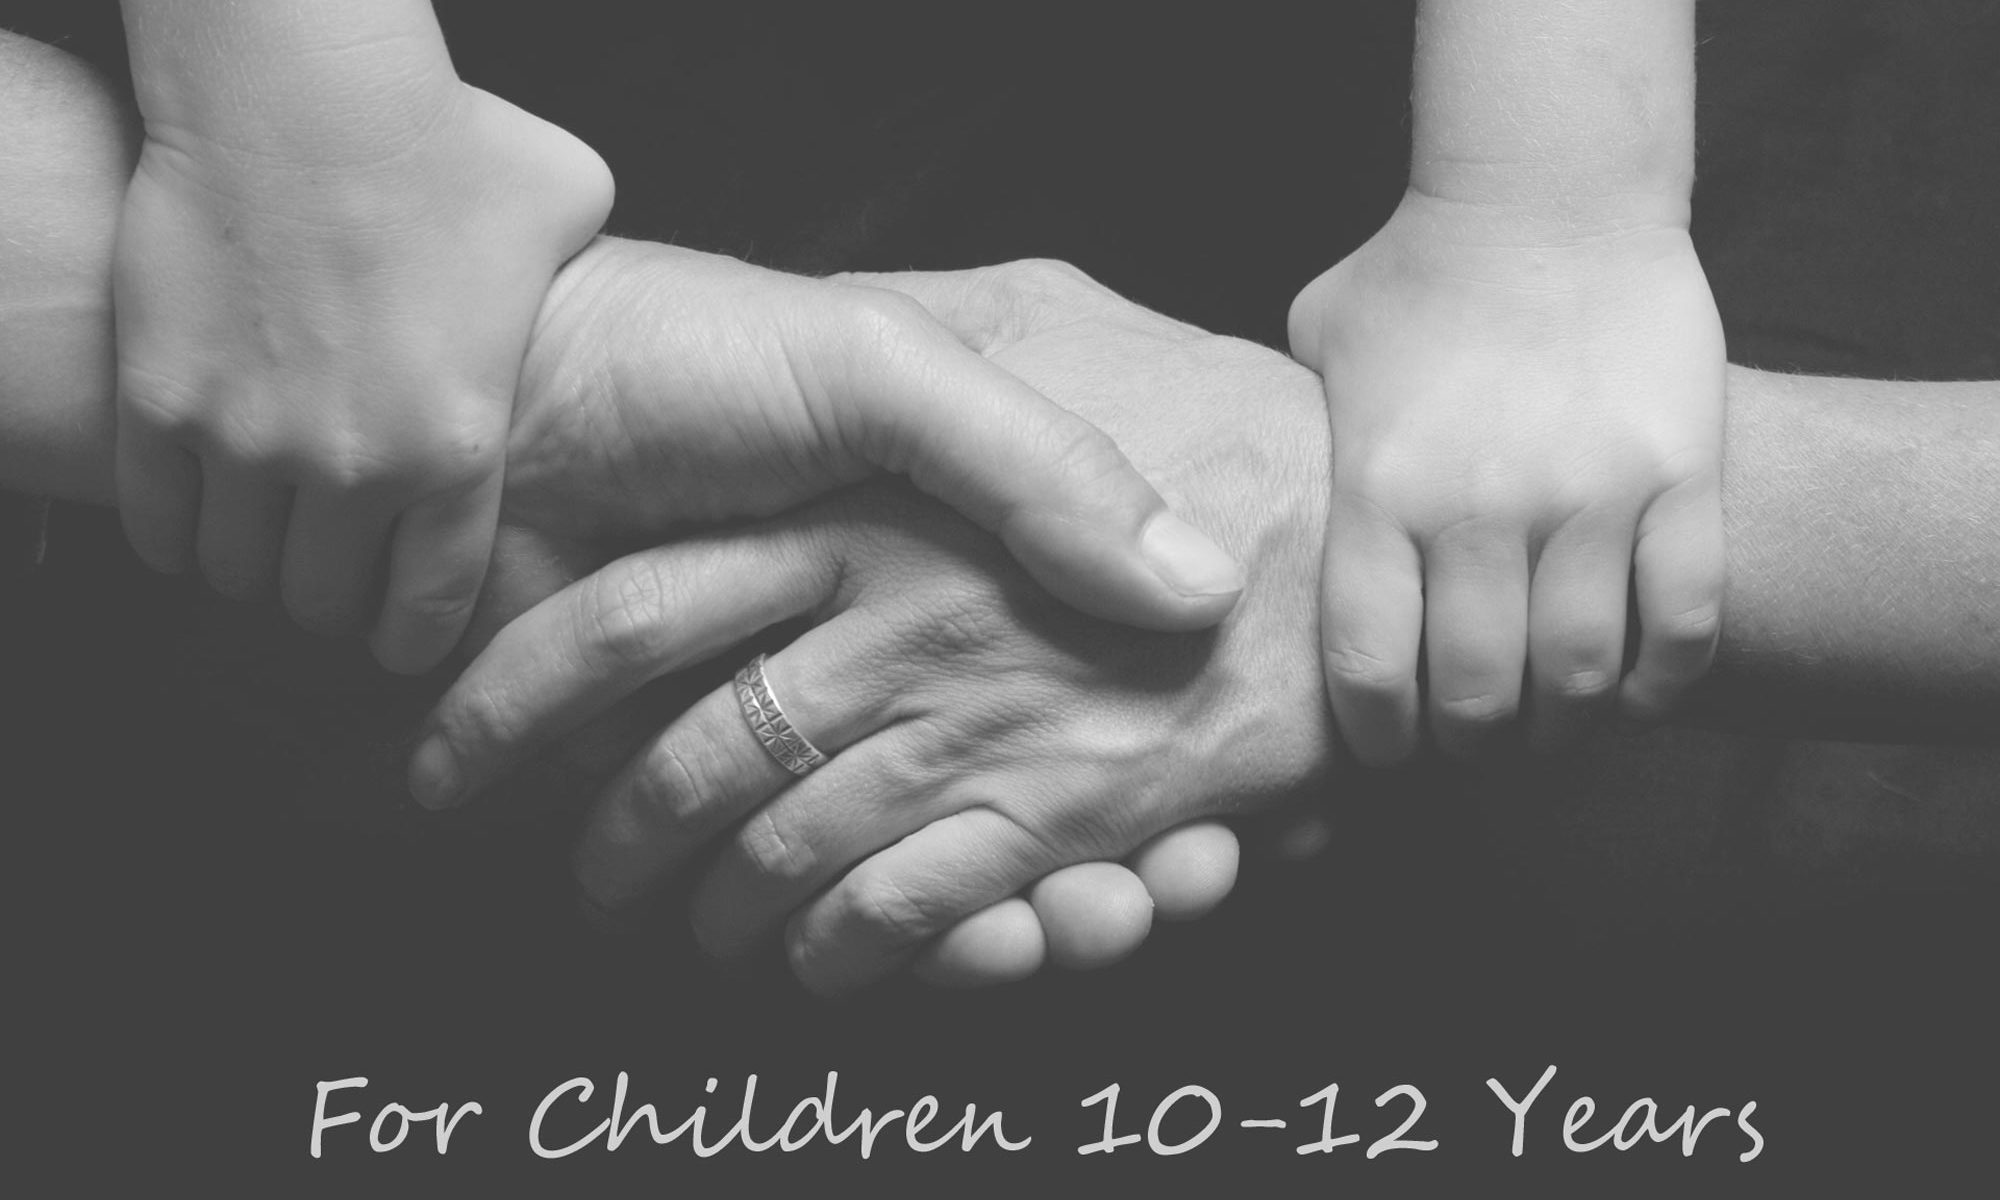 parenting plans for children 10-12 years old